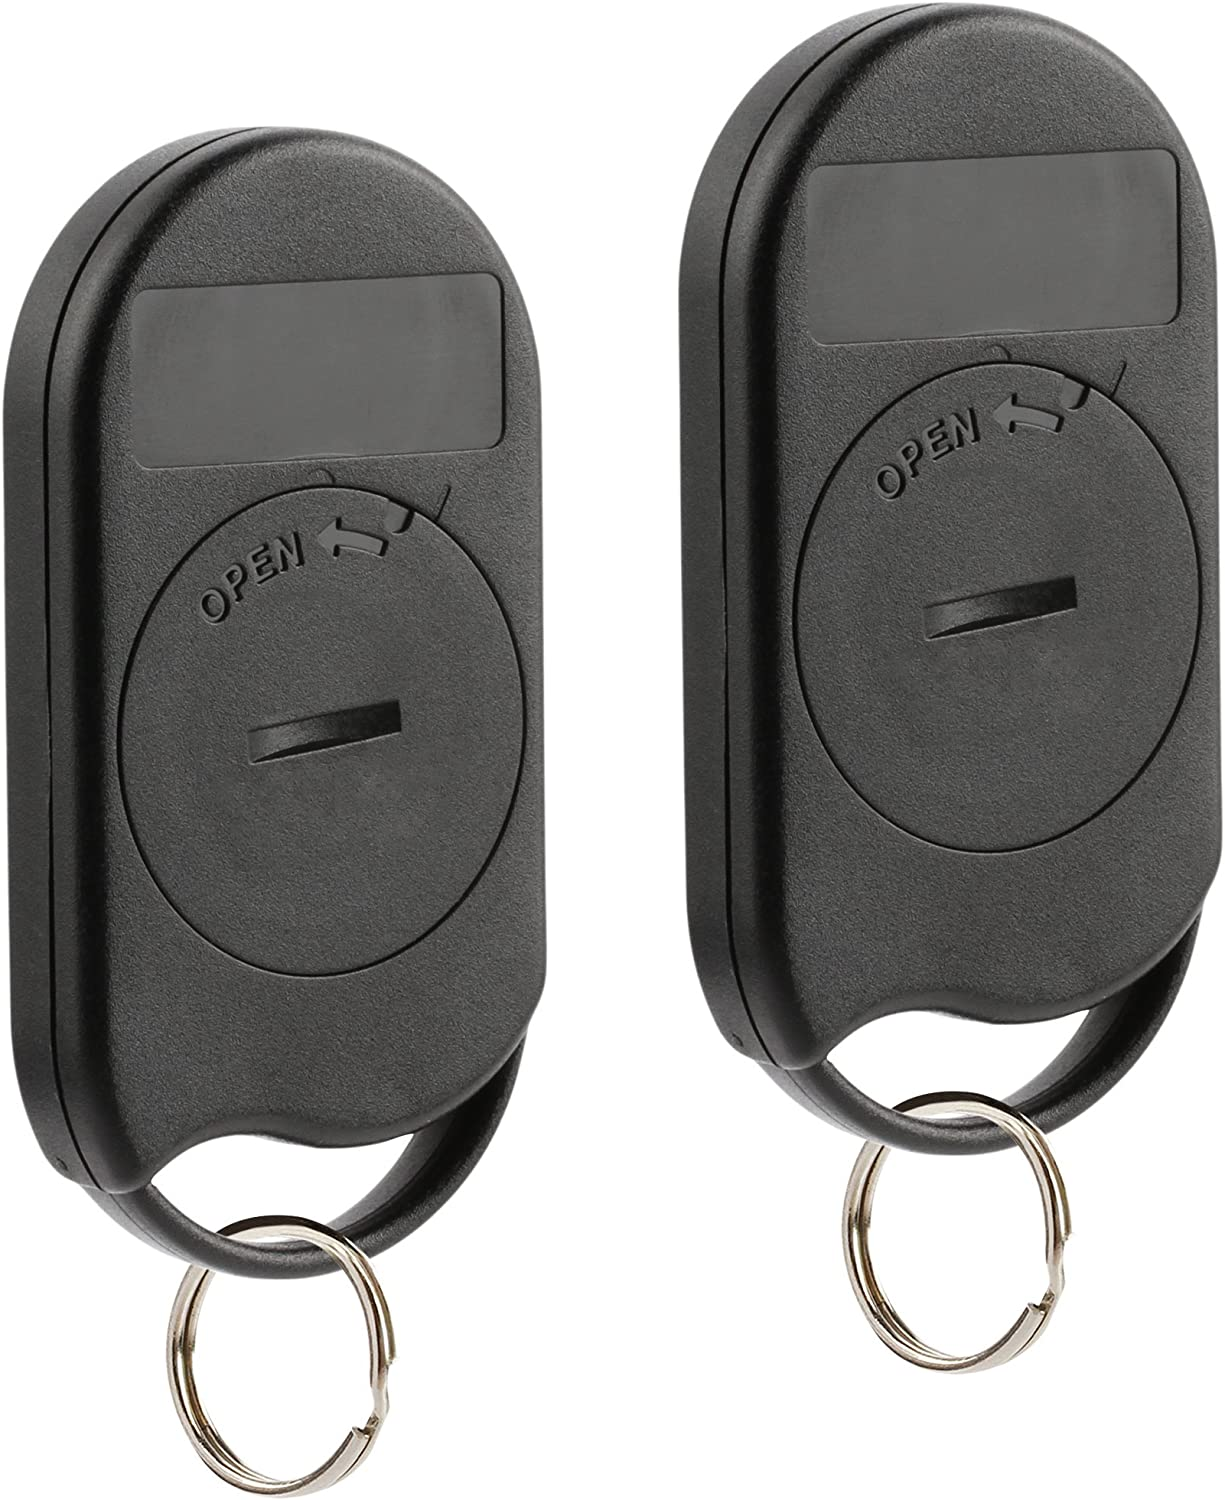 fits 1995 1996 1997 1998 1999 Nissan Maxima /& Infiniti I30 Key Fob Keyless Entry Remote Set of 2 A269ZUA078